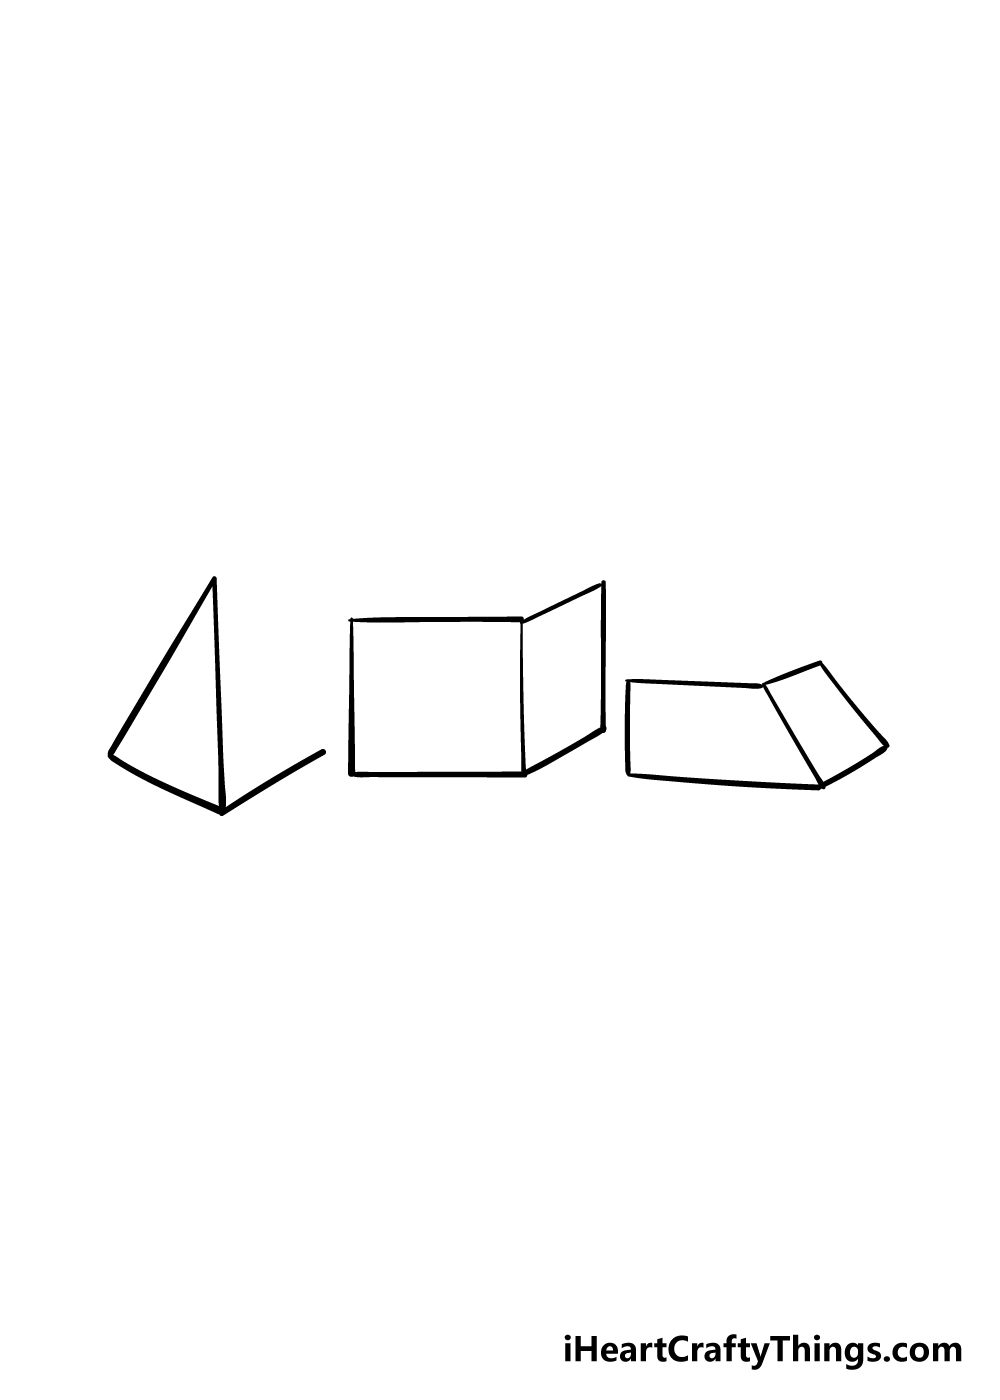 3D shapes drawing step 4